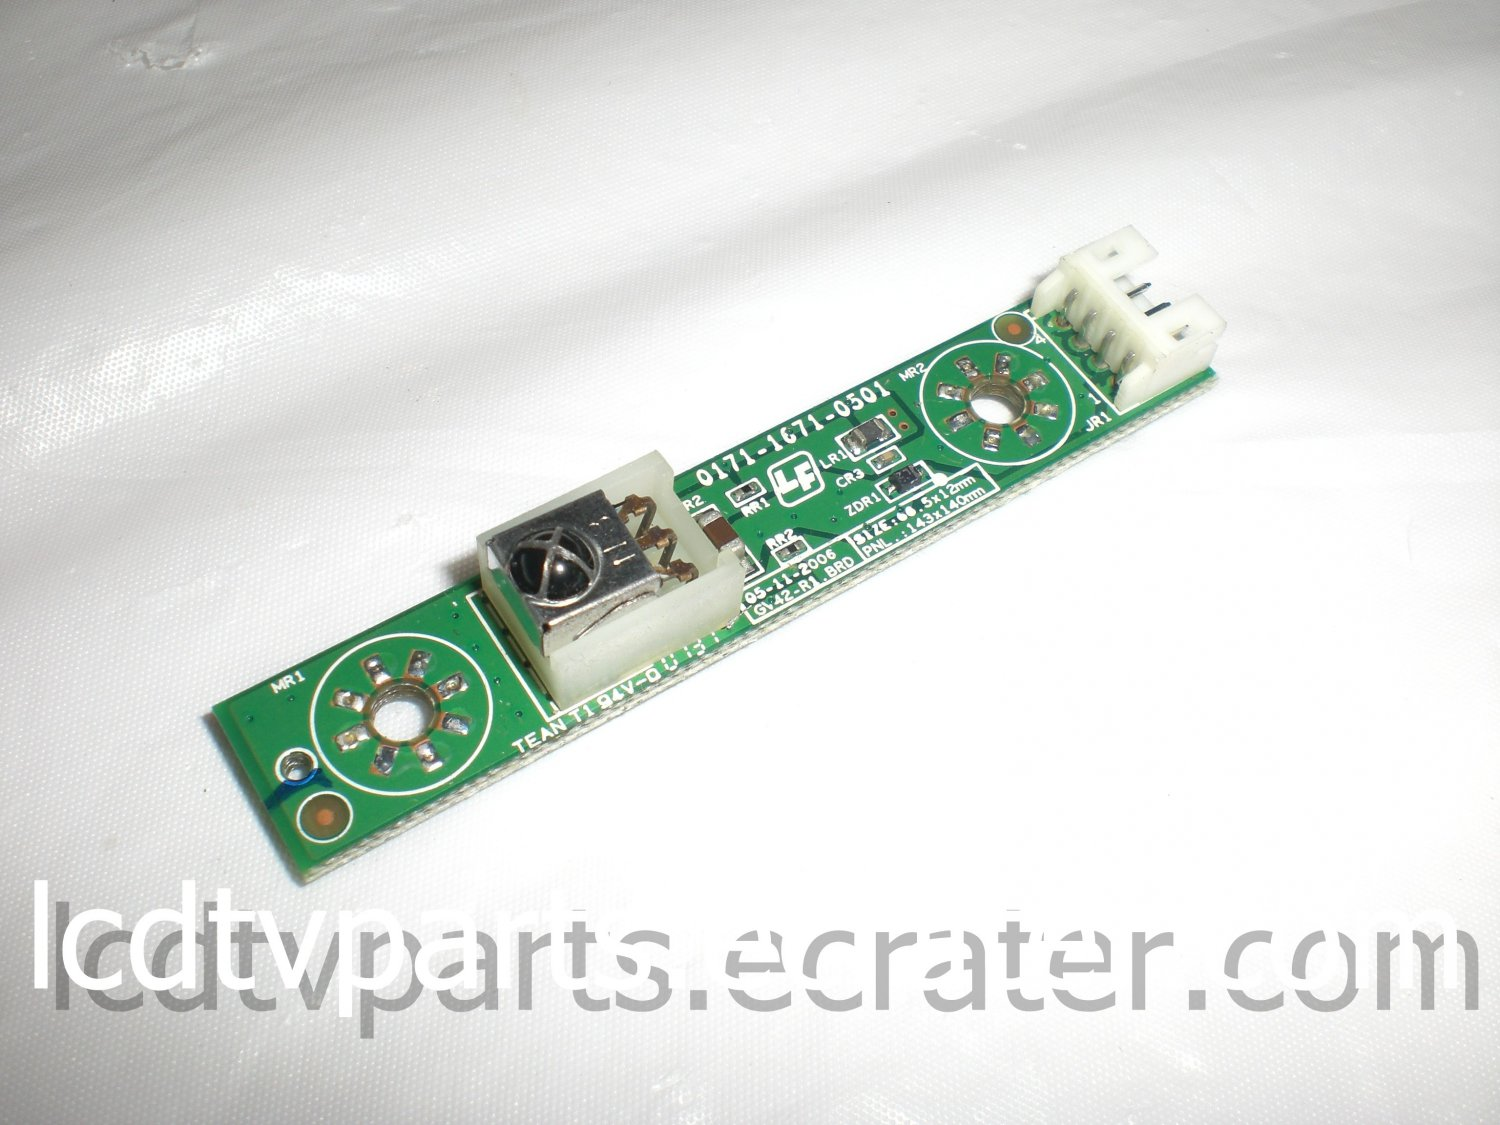 0171-1671-0501, 3642-0022-0189, LED IR ASSY For  VIZIO VU42LFHDTV10A